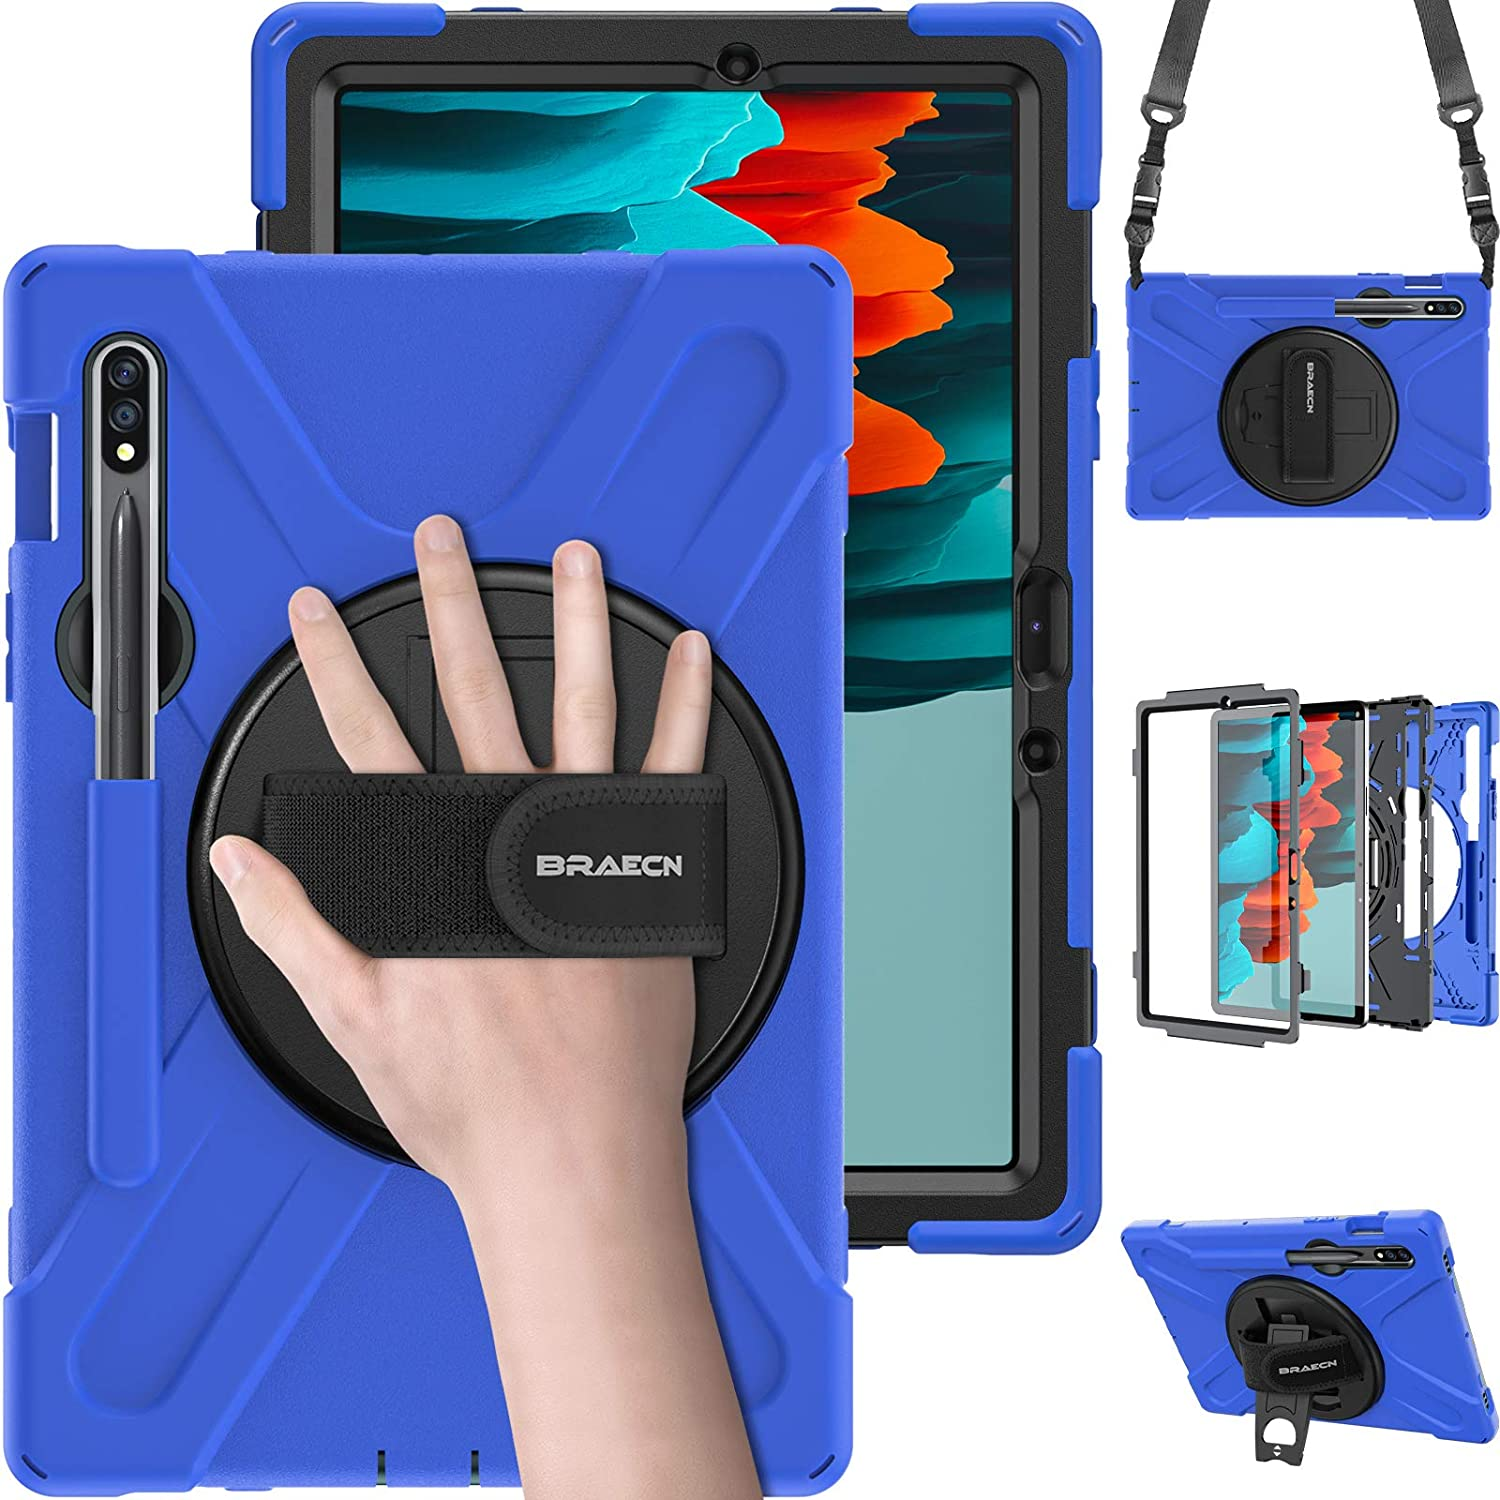 BRAECN Galaxy Tab S7 Case 2020, Heavy Duty Protective Tablet Case Cover with Adjustable Hand Strap, S Pen Holder, Shoulder Strap, Kickstand for Samsung Tab S7 11 Inch 2020 Release SM-T870/SM-T875-Blue